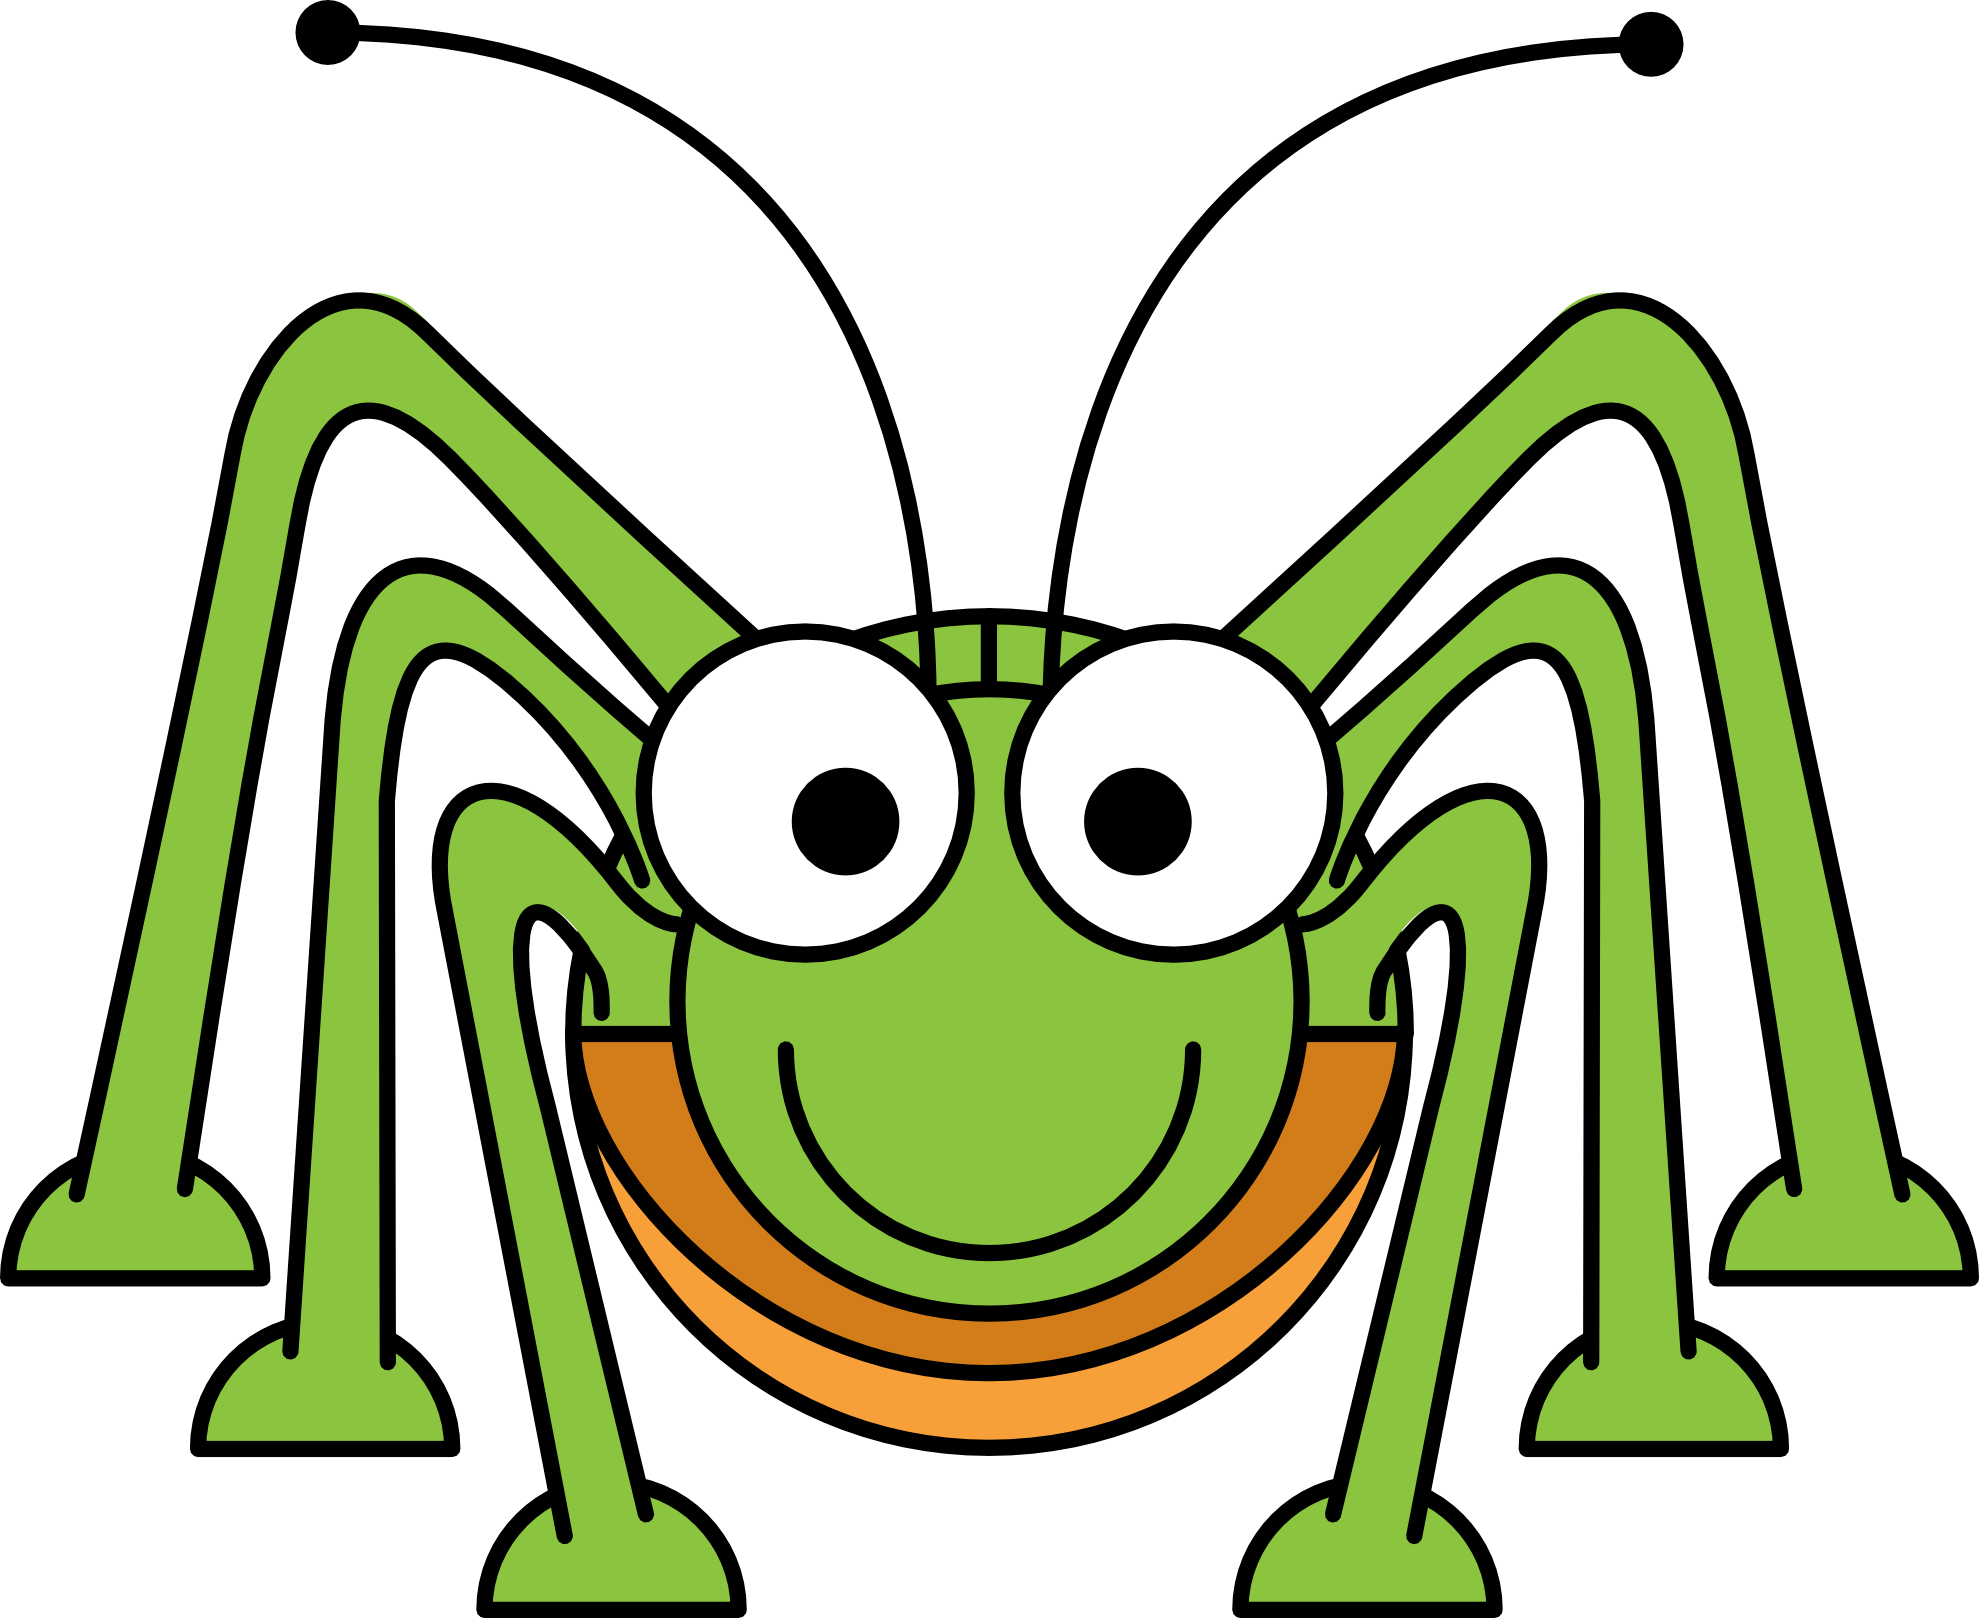 clipart stock spiders clipart toon #83832750